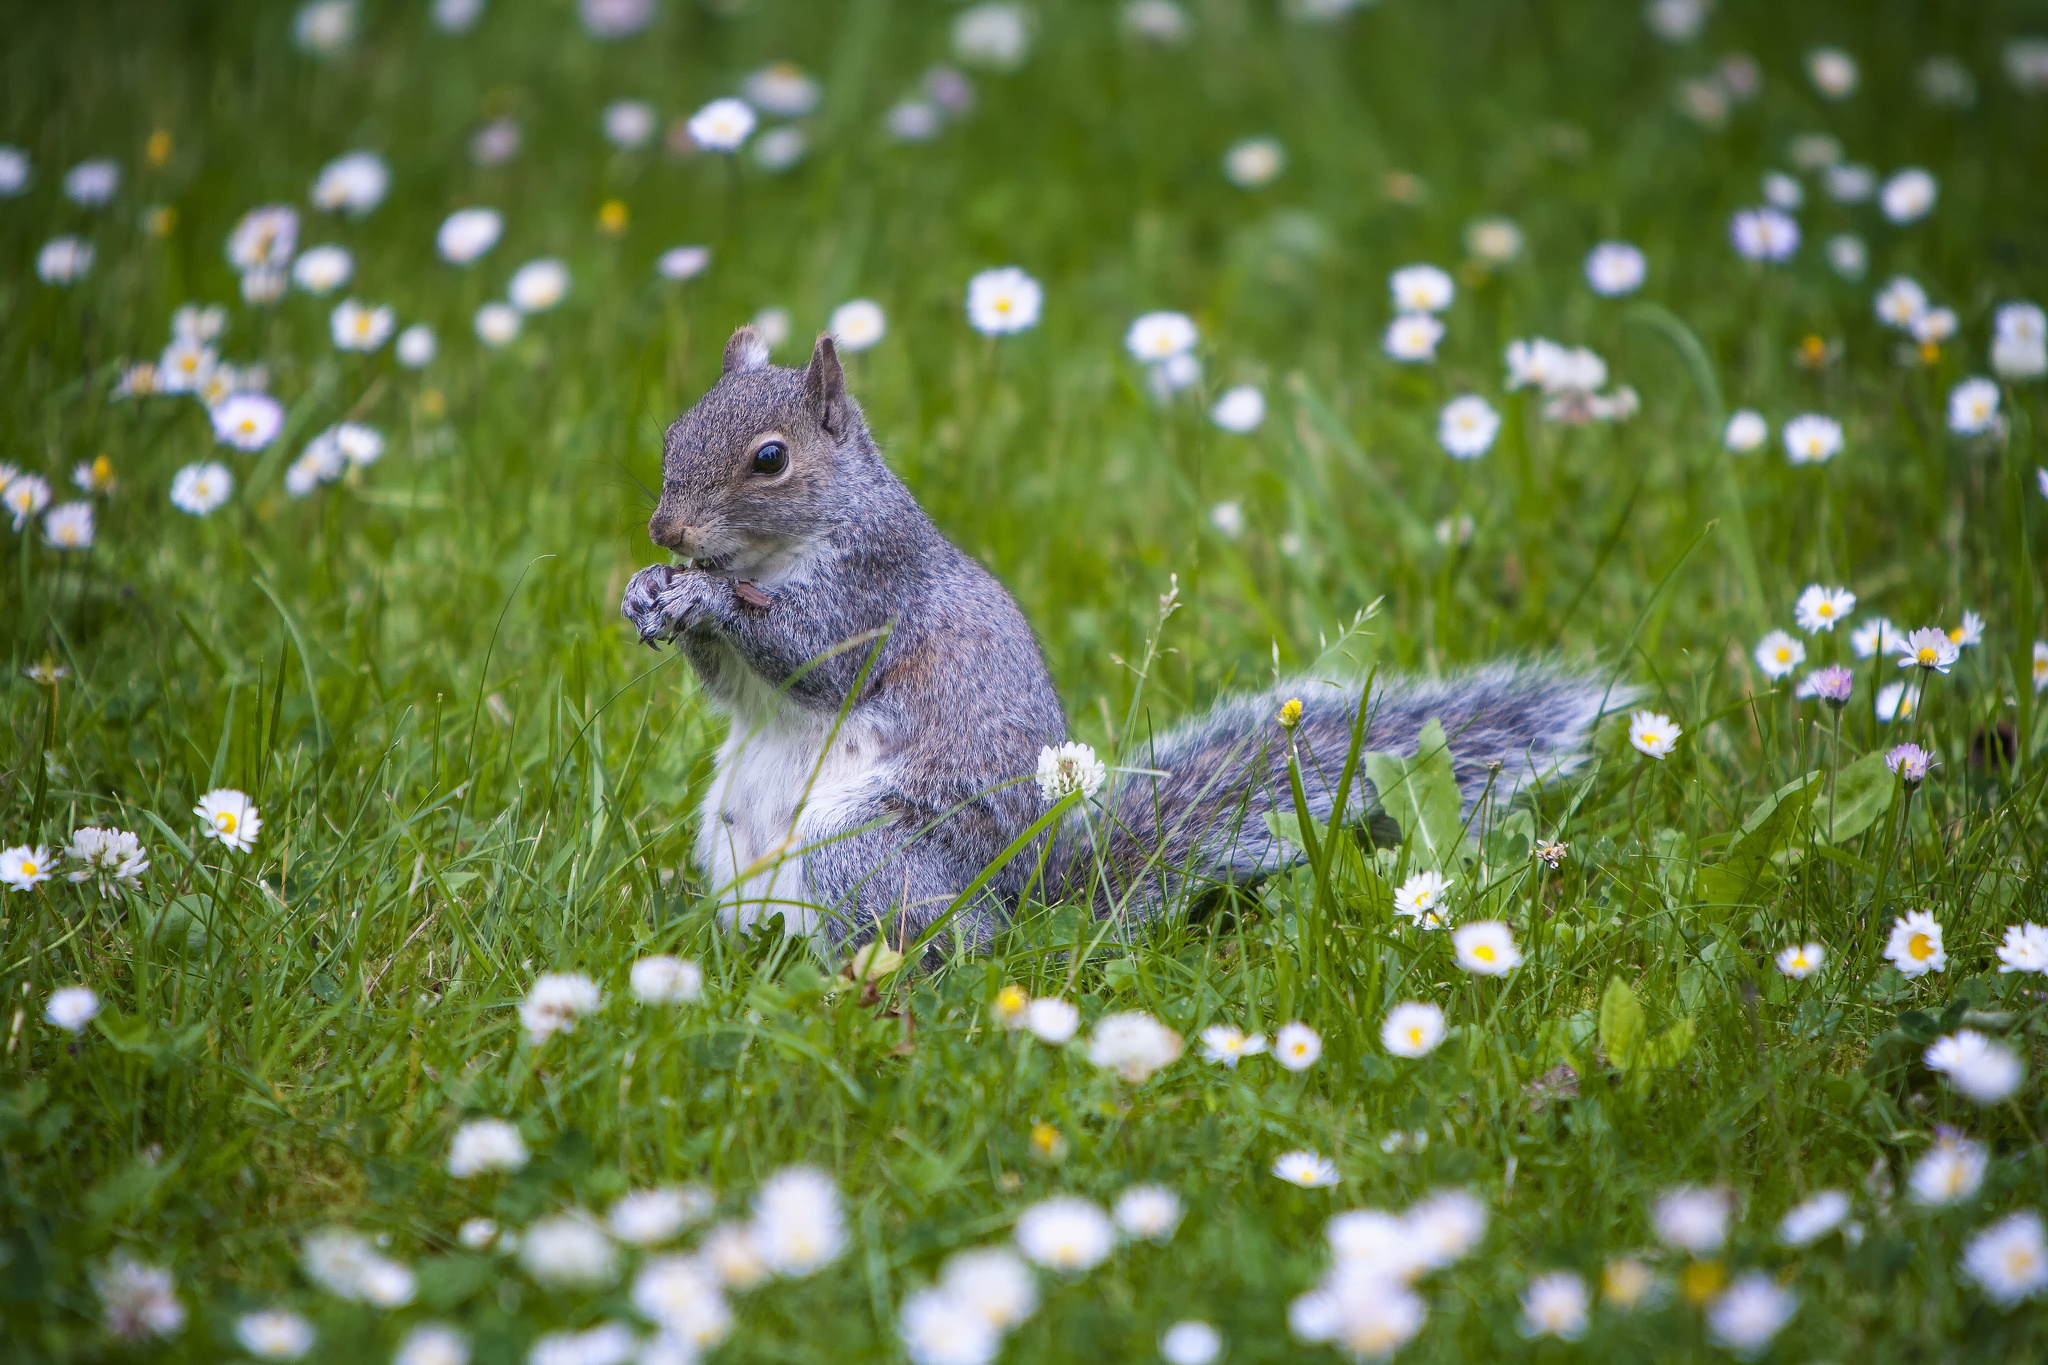 134625 download wallpaper Animals, Squirrel, Animal, Grass, Stroll screensavers and pictures for free